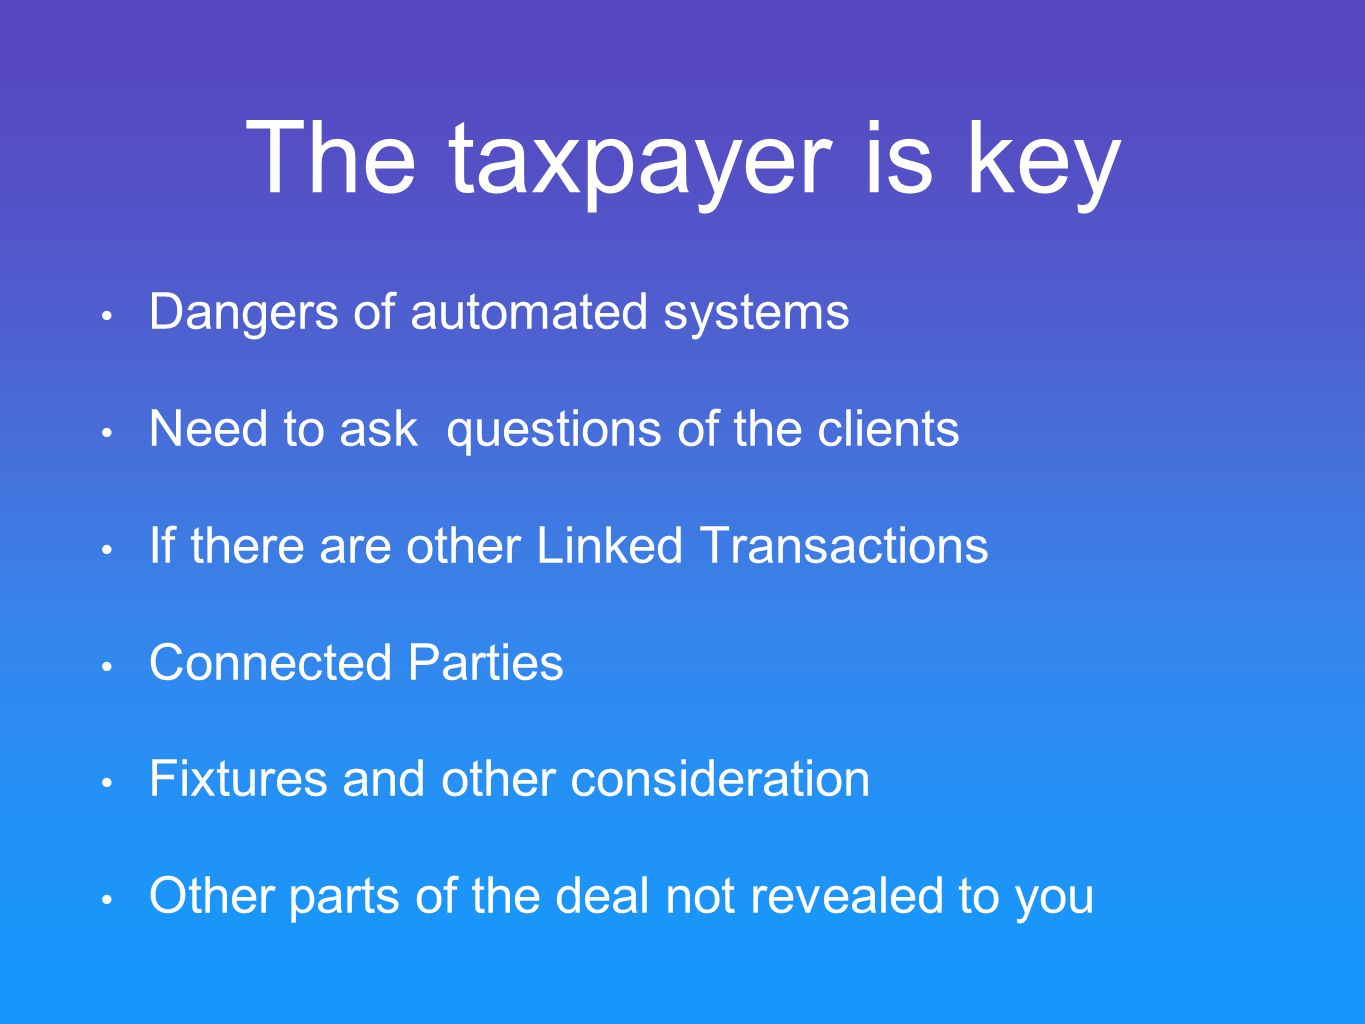 The taxpayer is key Dangers of automated systems Need to ask questions of the clients If there are other Linked Transactions Connected Parties Fixtures and other consideration Other parts of the deal not revealed to you